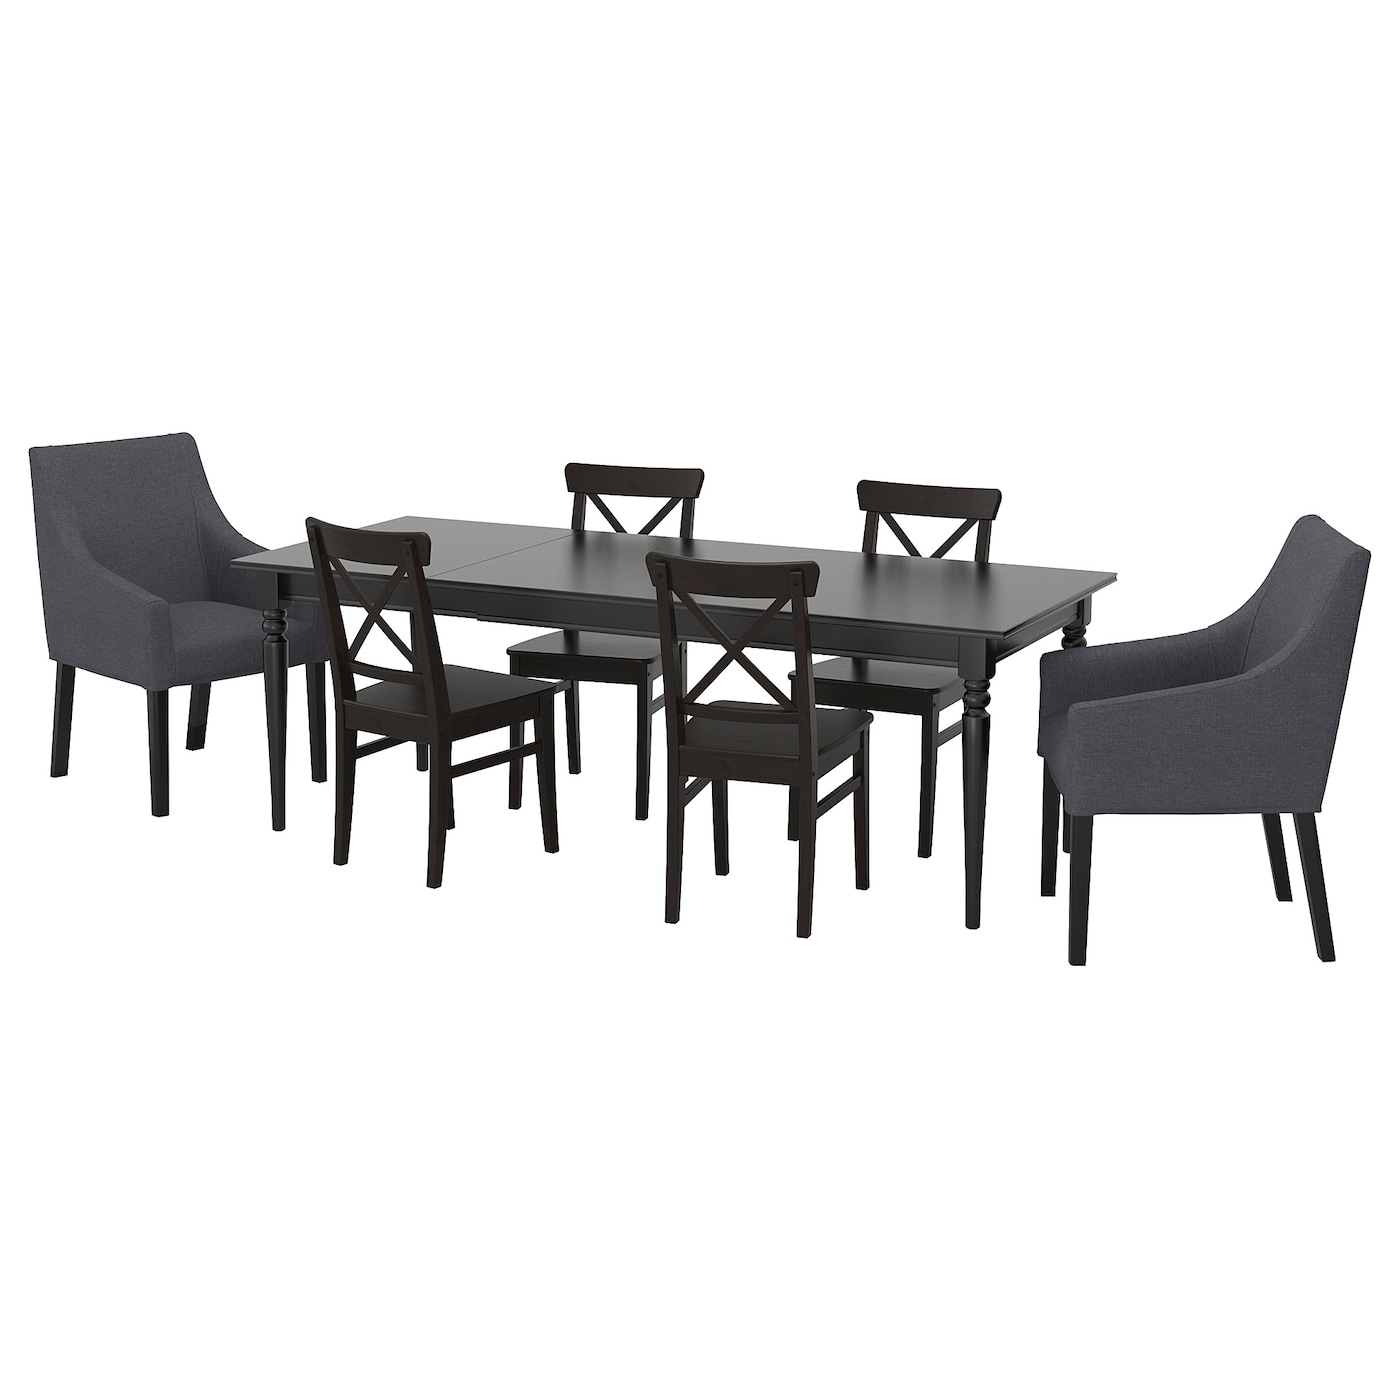 IKEA INGATORP/INGOLF table and 6 chairs 1 extension leaf included.